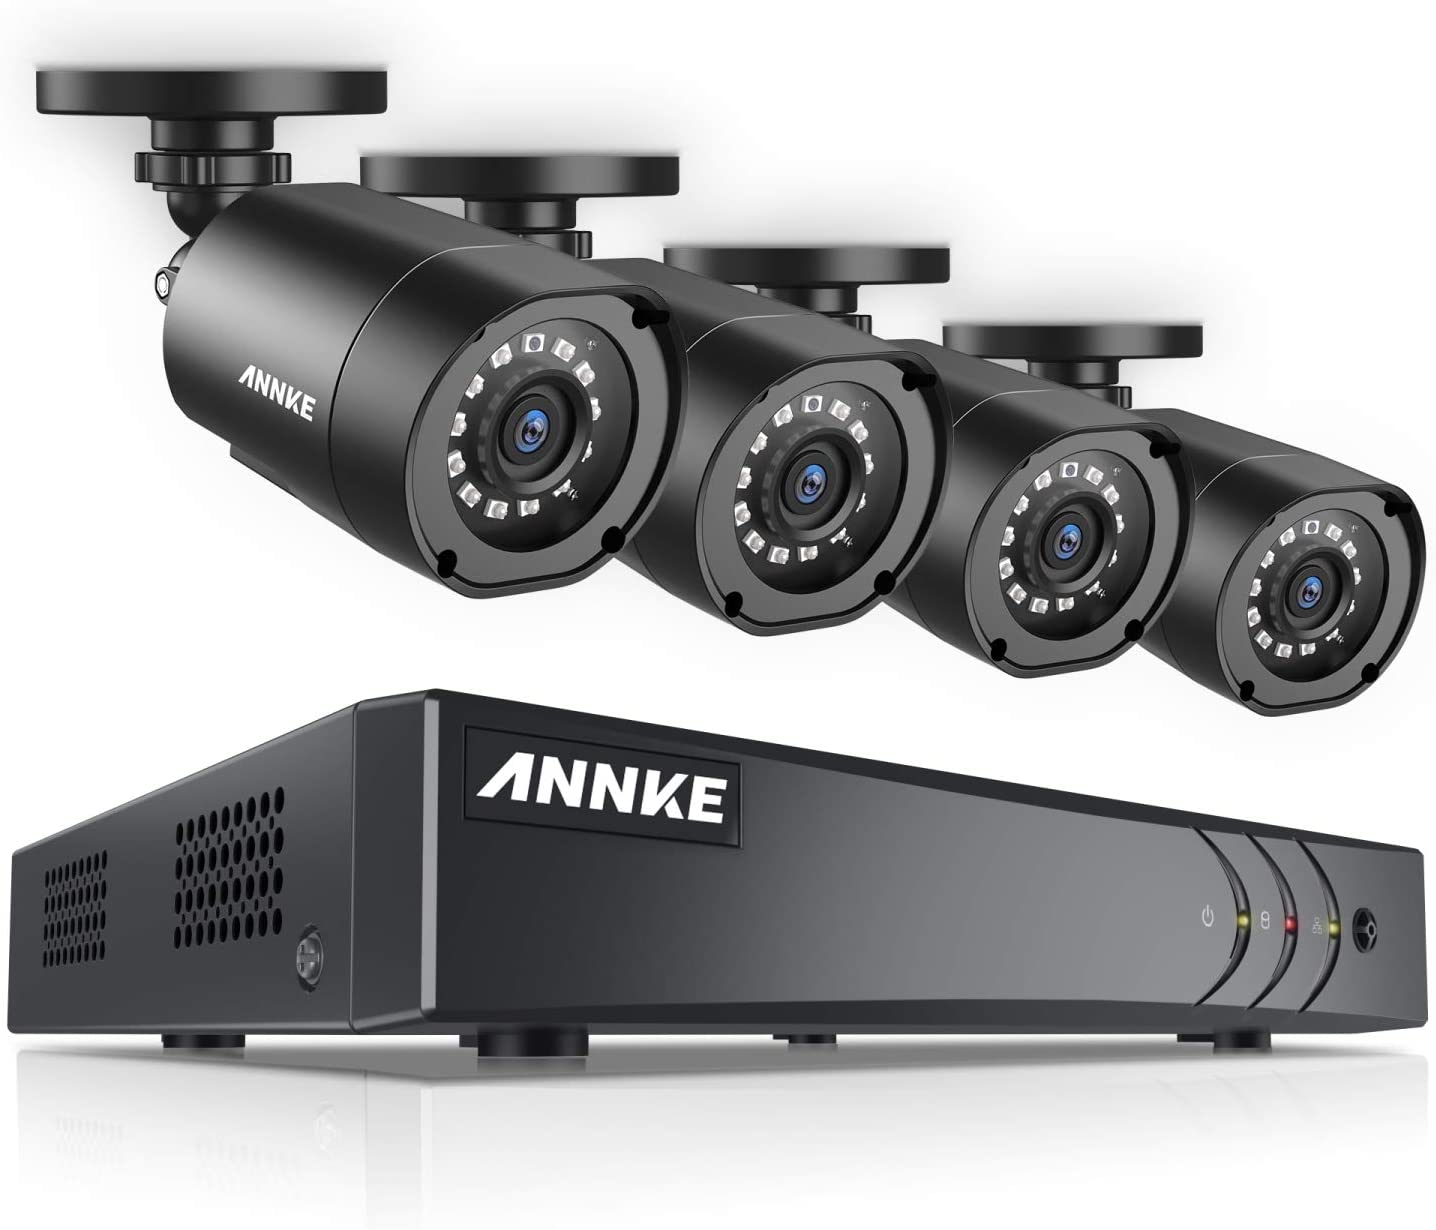 ANNKE 8 Channel Security Camera System 1080P Lite H.264+ CCTV DVR Recorder and (4) 1080P Weatherproof Indoor/Outdoor Surveillance Cameras, Email Alert with Snapshots, NO Hard Drive